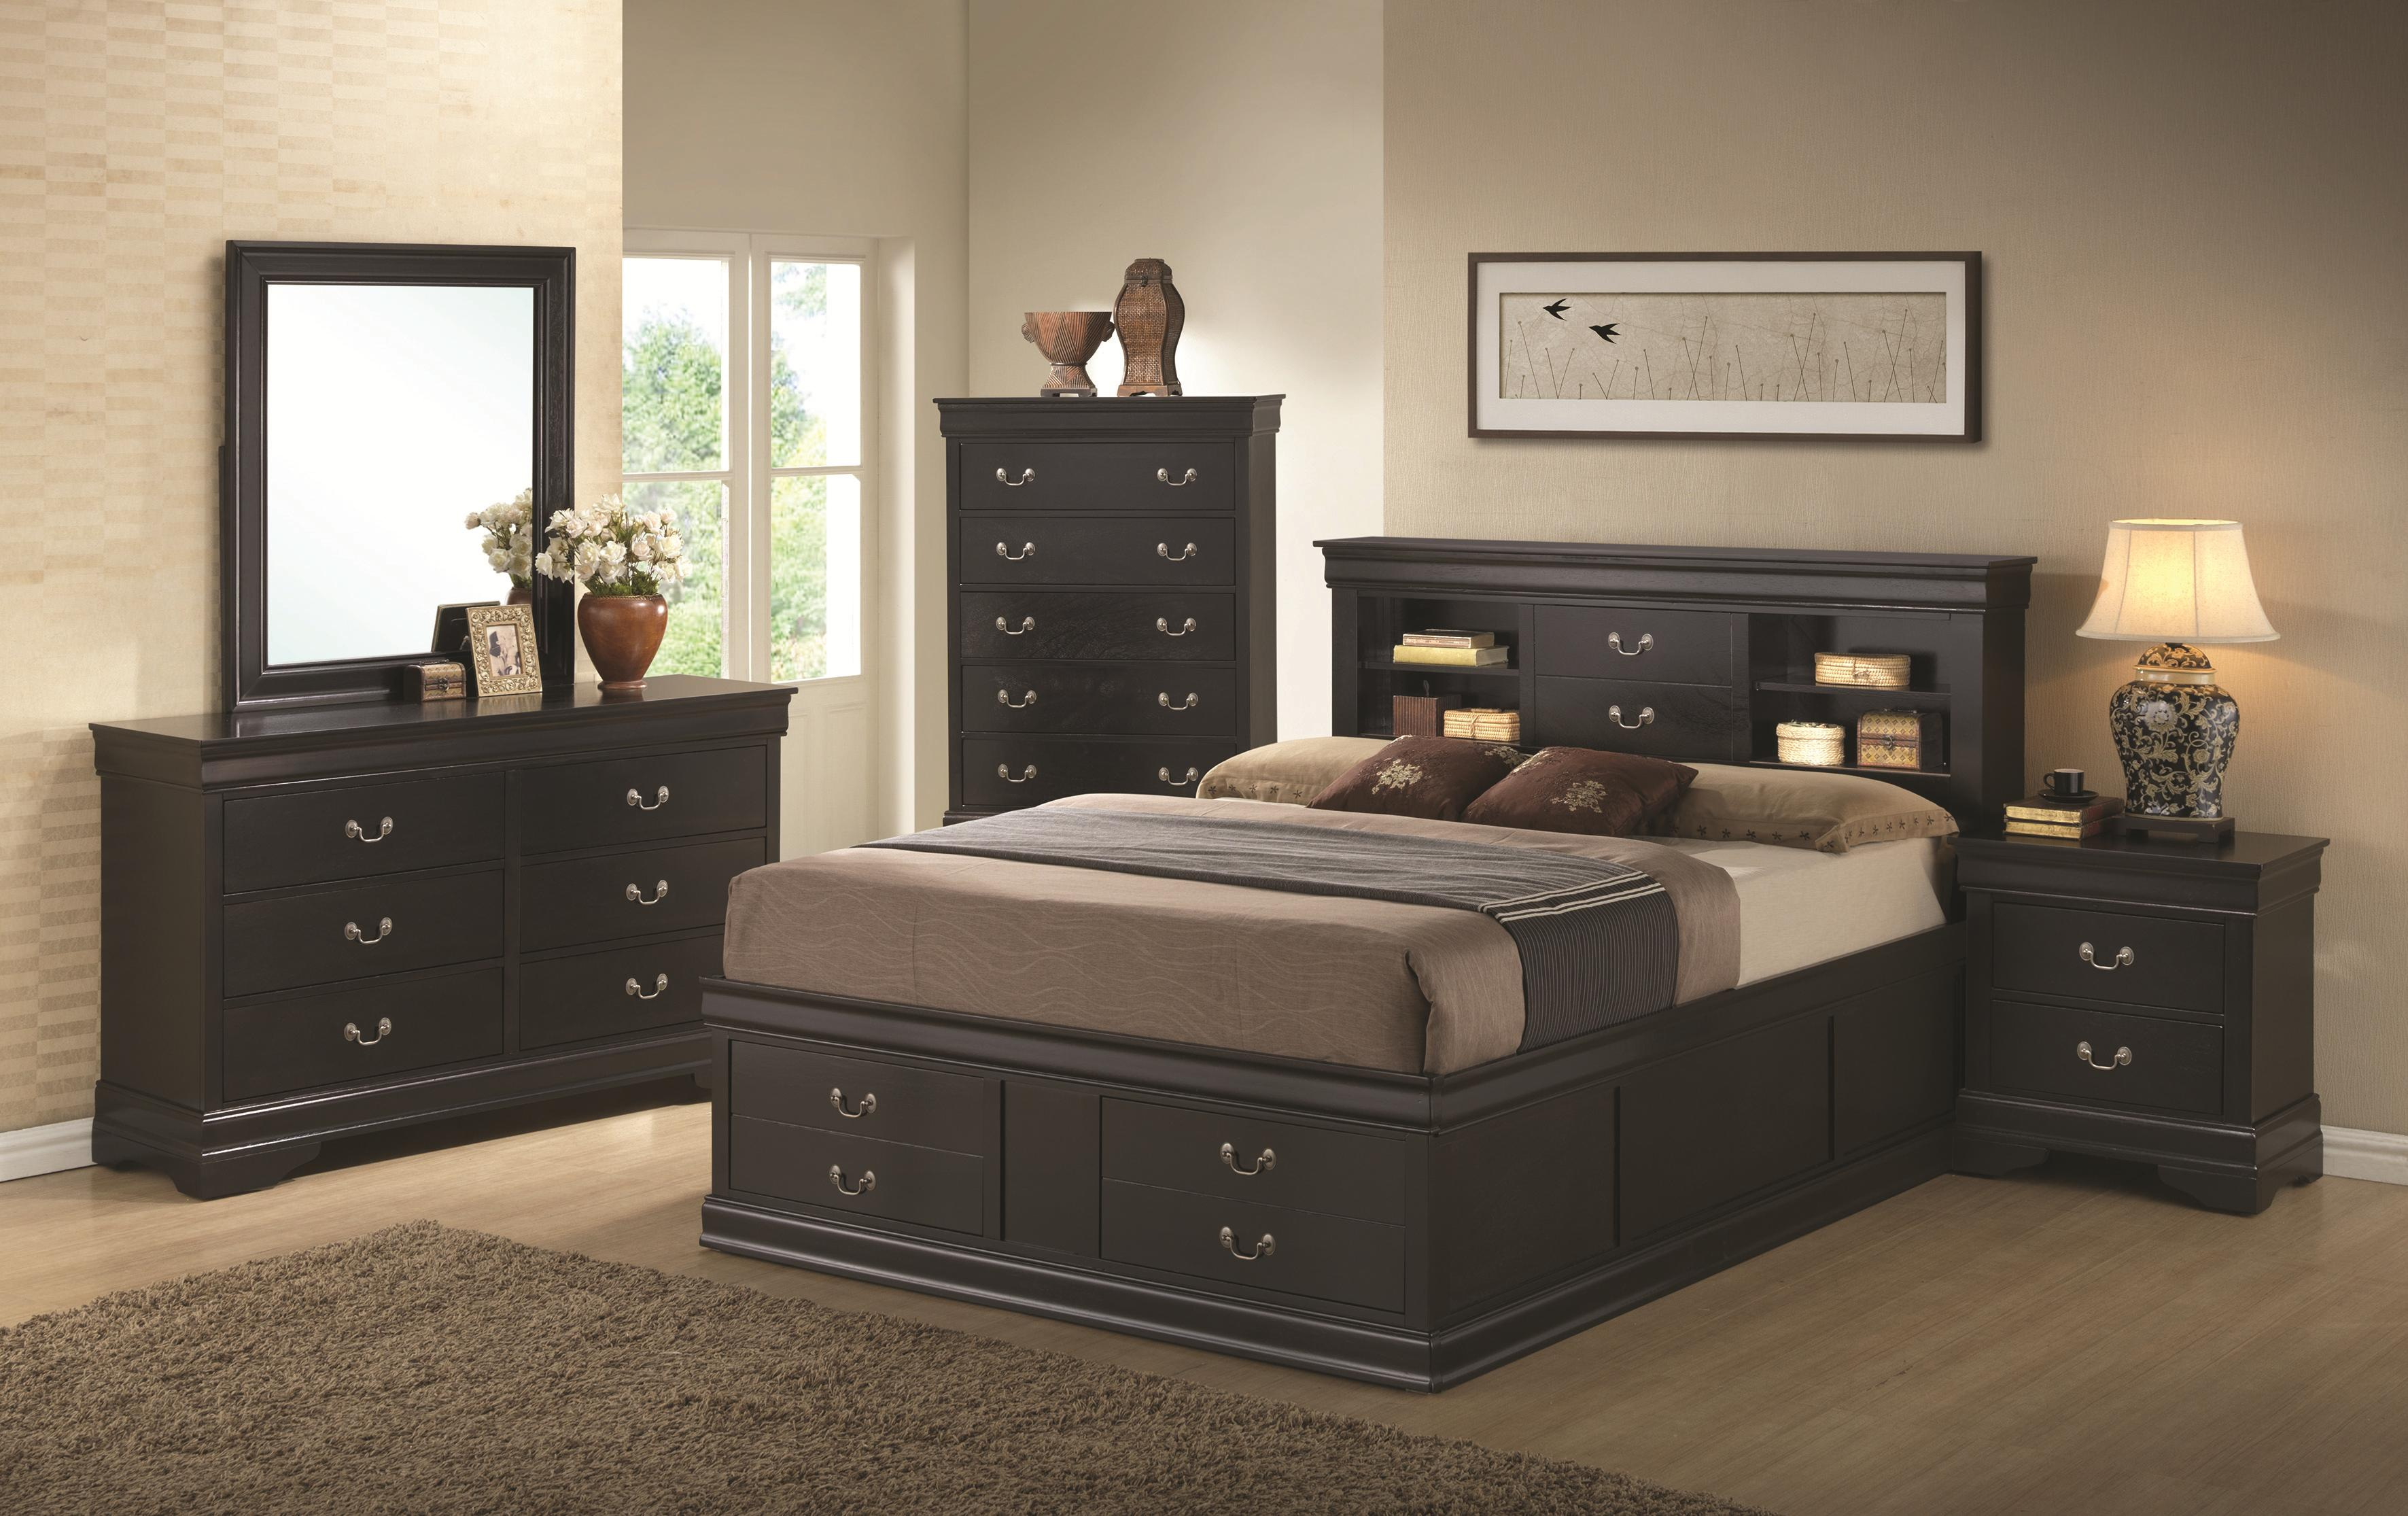 Coaster Louis Philippe Queen Bedroom Group   Item Number: 203960B Q Bedroom  Group 1